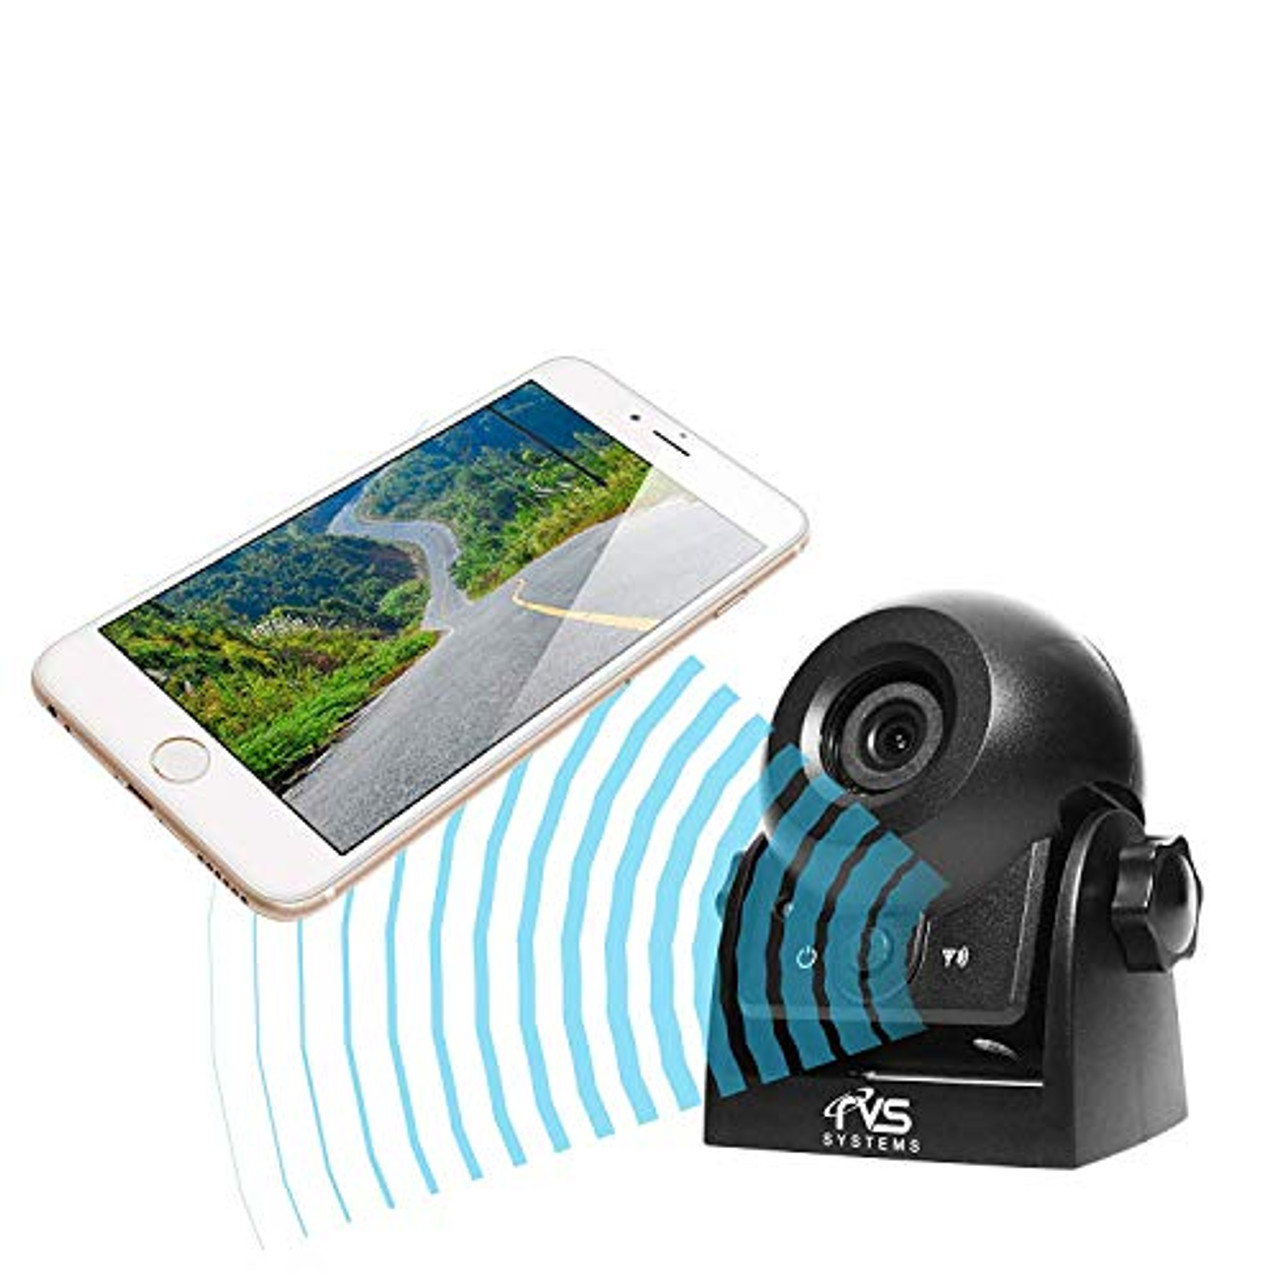 RVS WiFi Hitch Camera for Hitching Trailers, Travel Trailers and Fifth Wheels RVS-83112-WiFi by Rear View Safety | 0211XKUSJUN